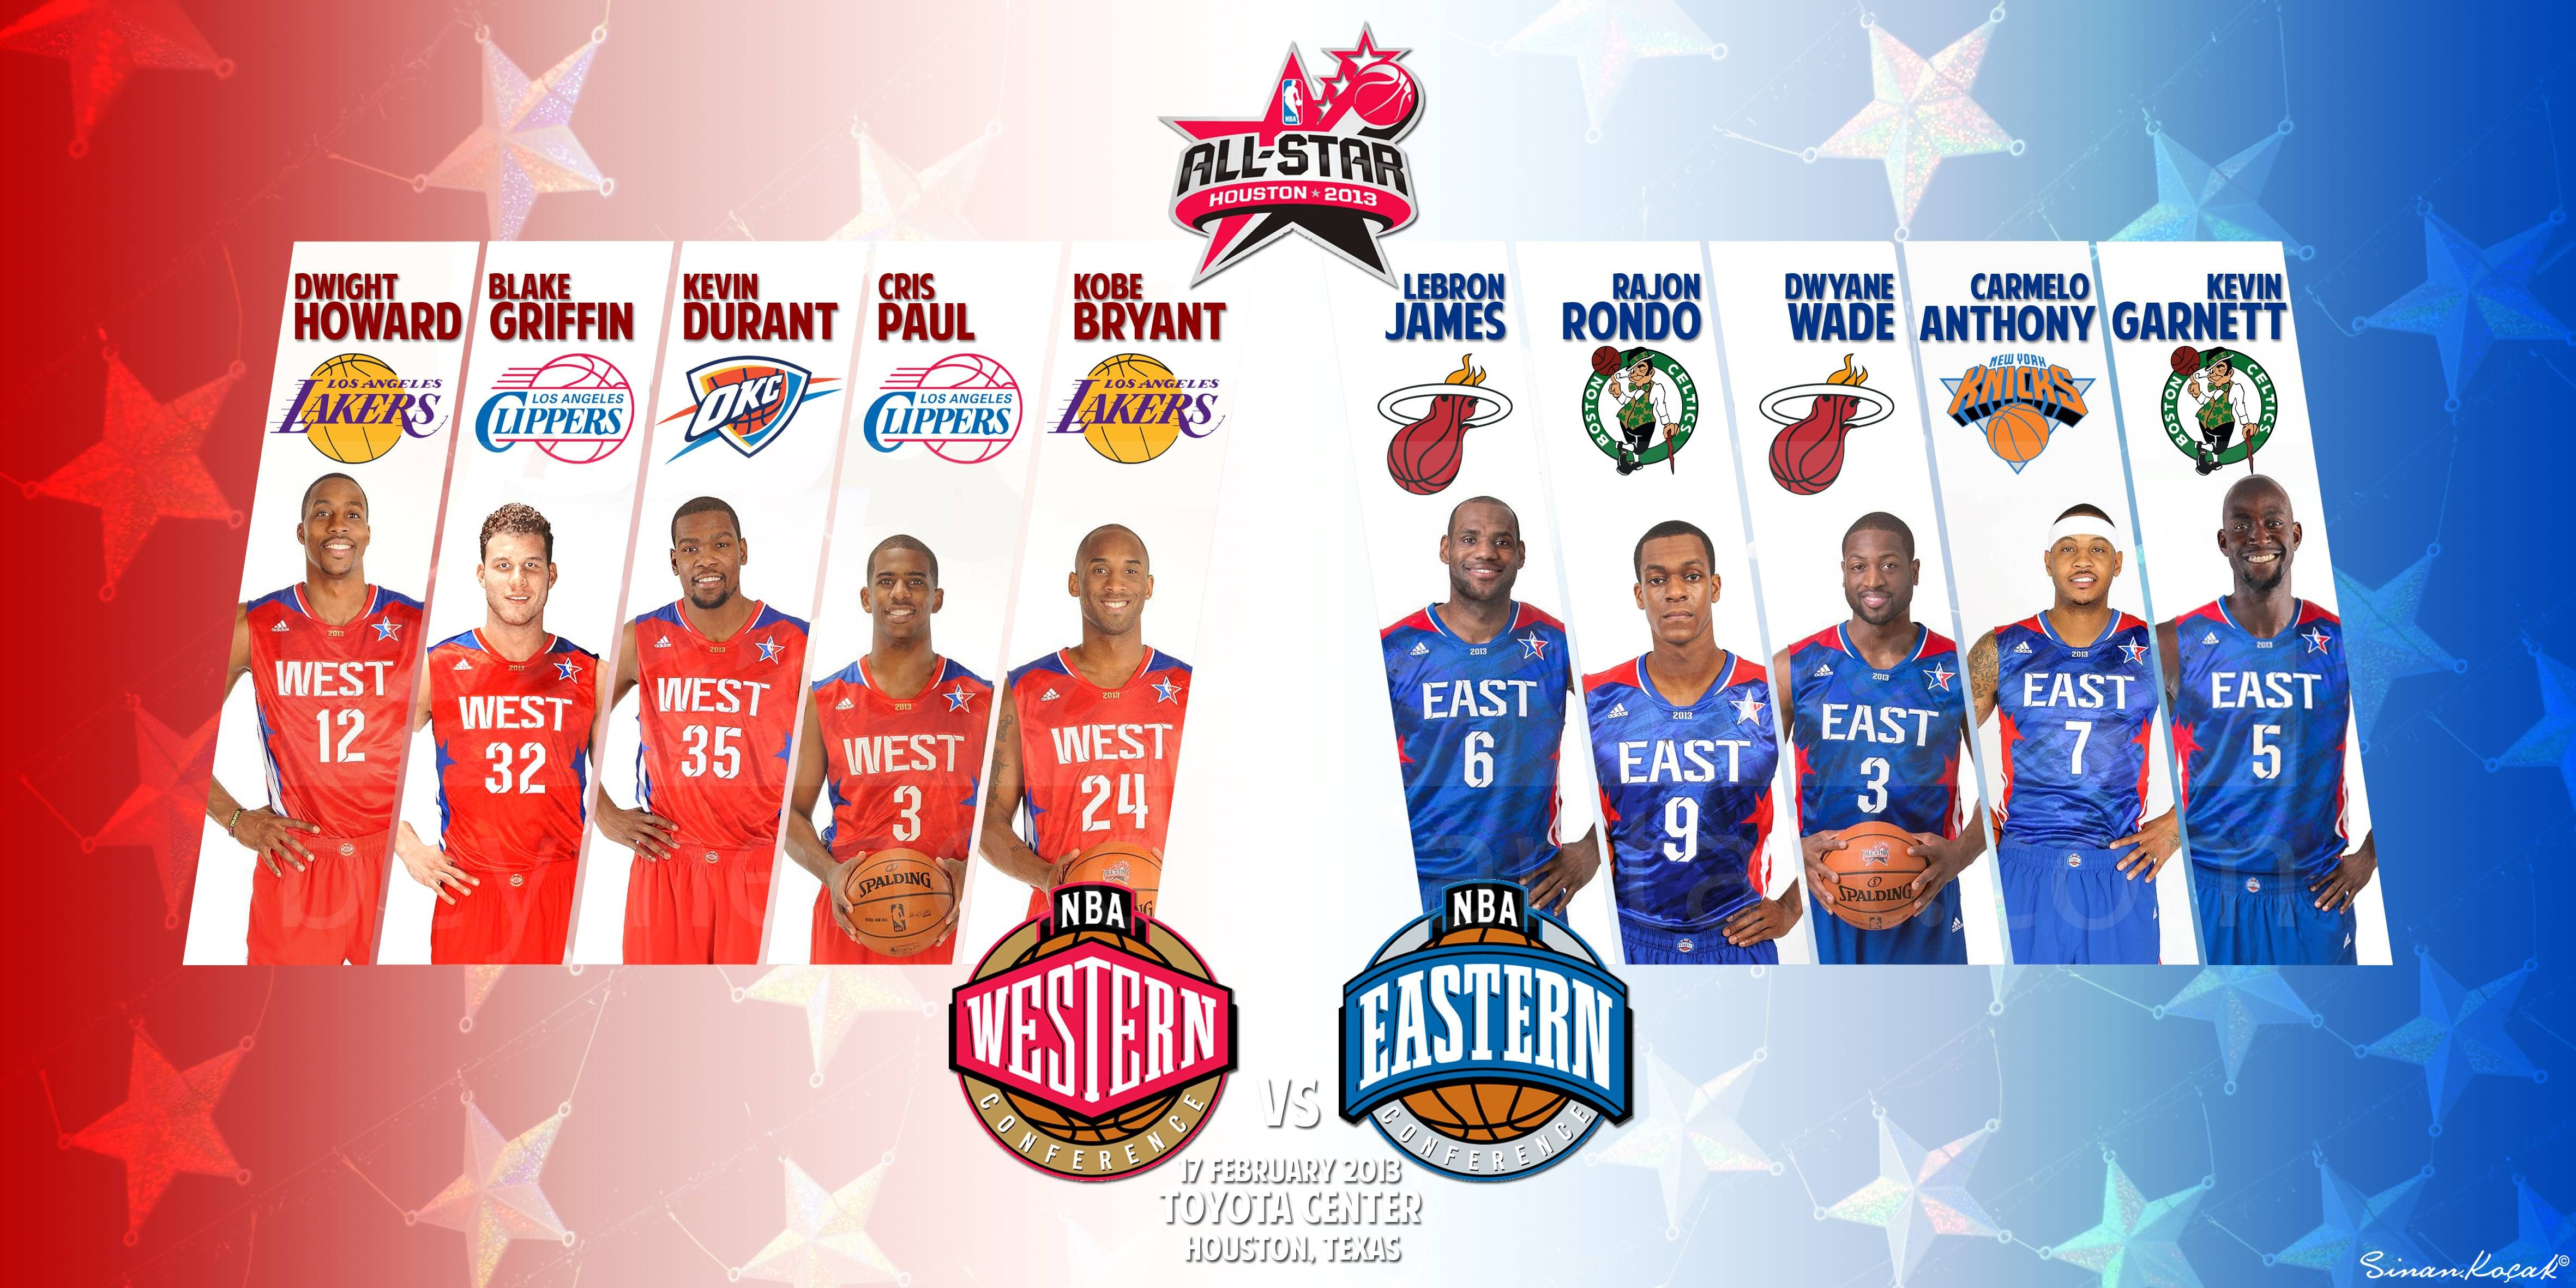 Get The Latest Hd And Mobile Nba Wallpapers Today: Get The Latest HD And Mobile NBA Wallpapers